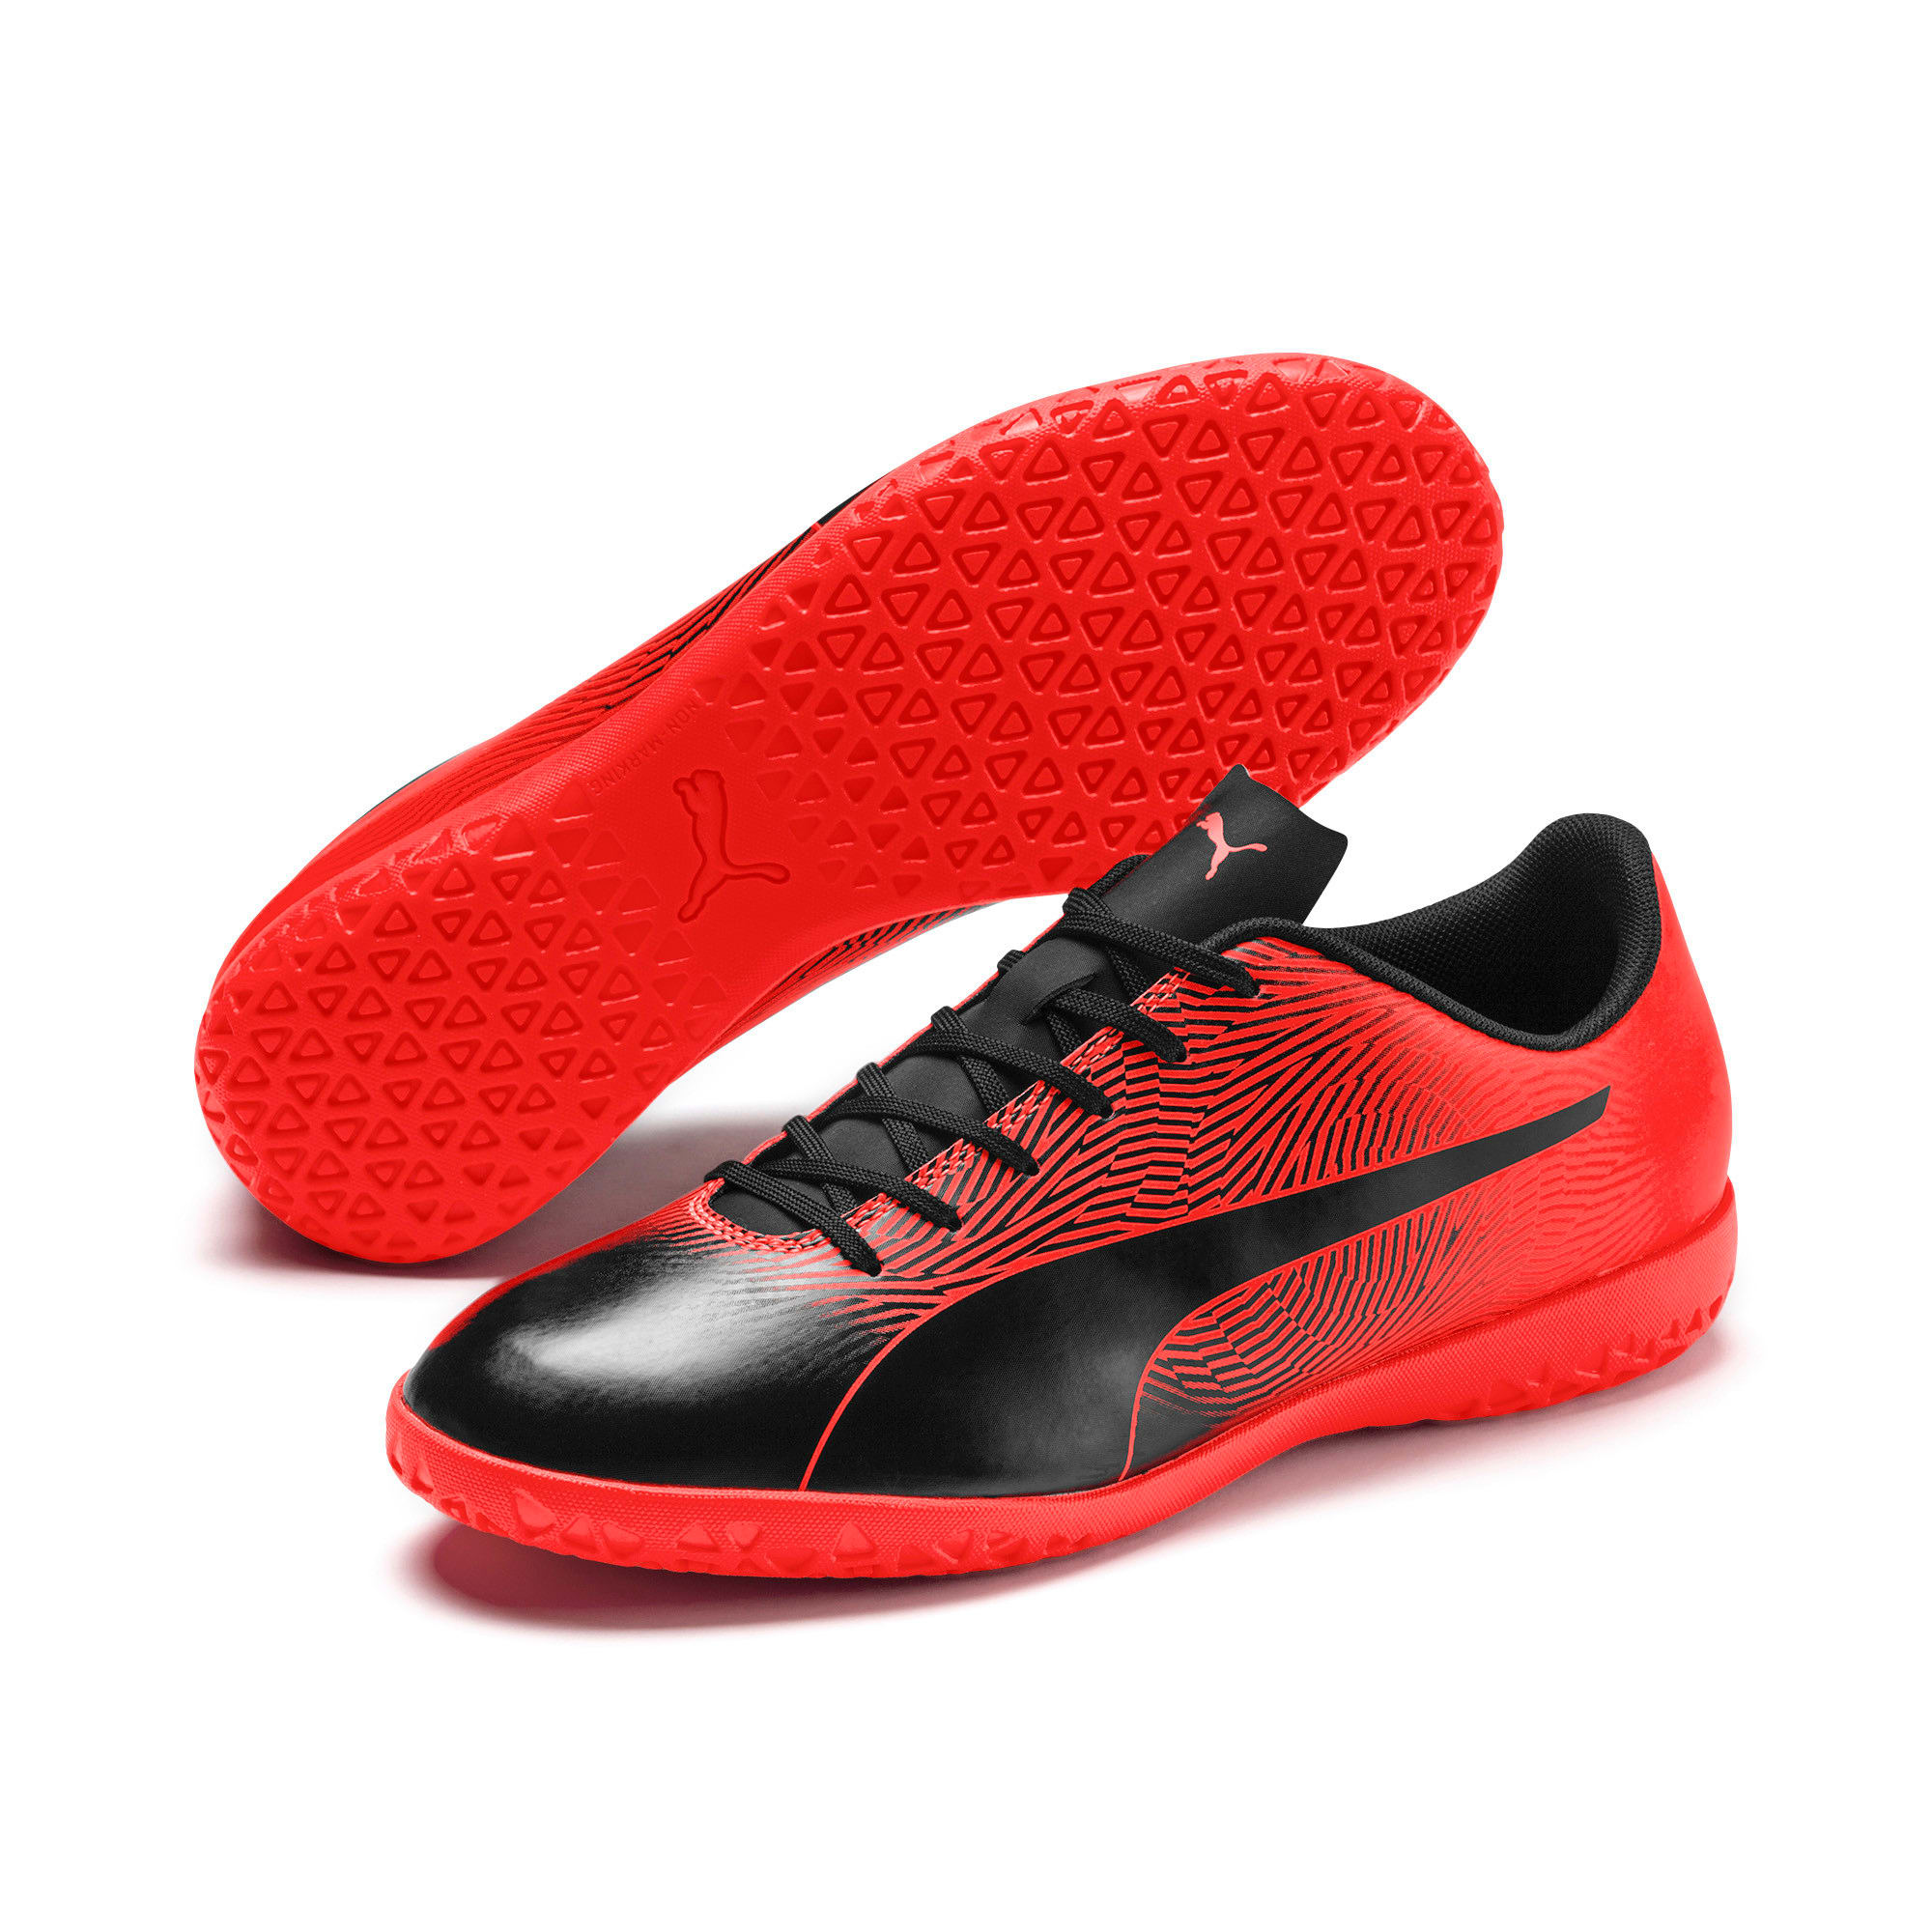 Thumbnail 2 of PUMA Spirit II IT Men's Soccer Shoes, Puma Black-Nrgy Red, medium